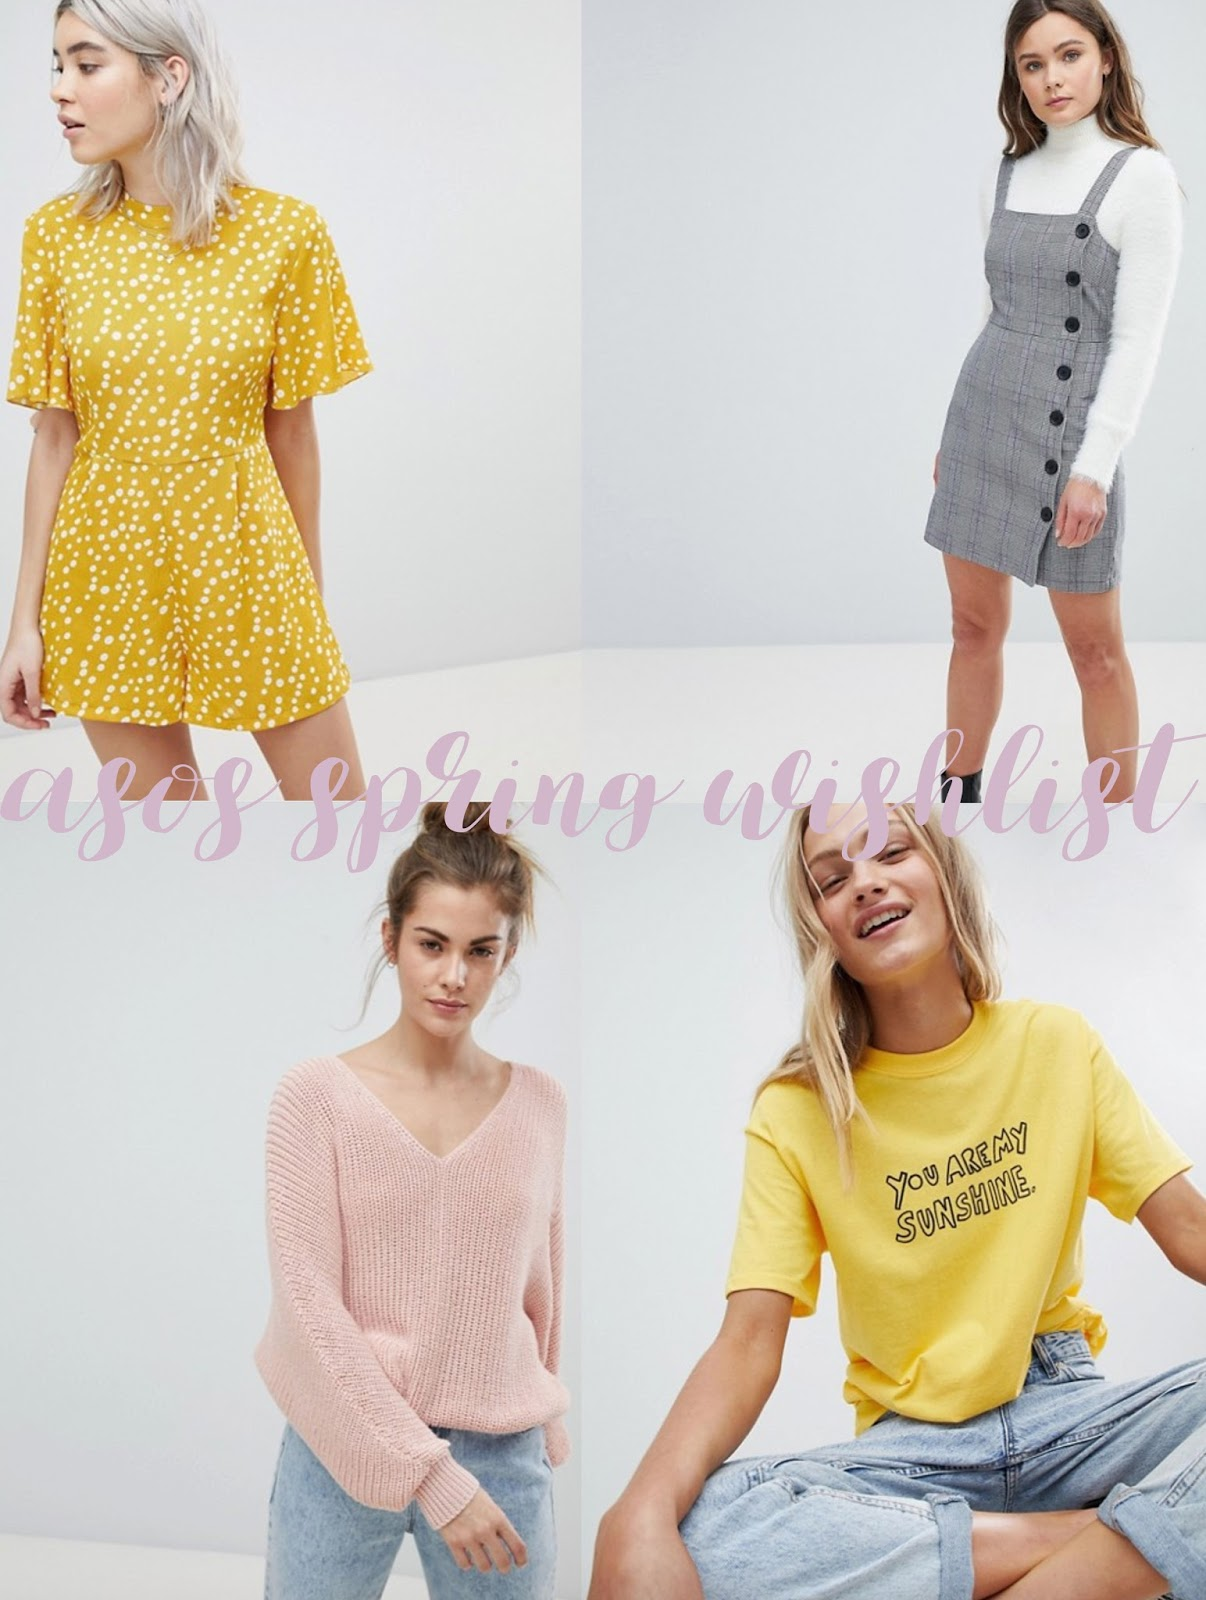 forever september, forever september fashion, forever september beauty, beauty, fashion, lifestyle, blogger, asos, asos wishlist, spring, spring fashion, ss18,